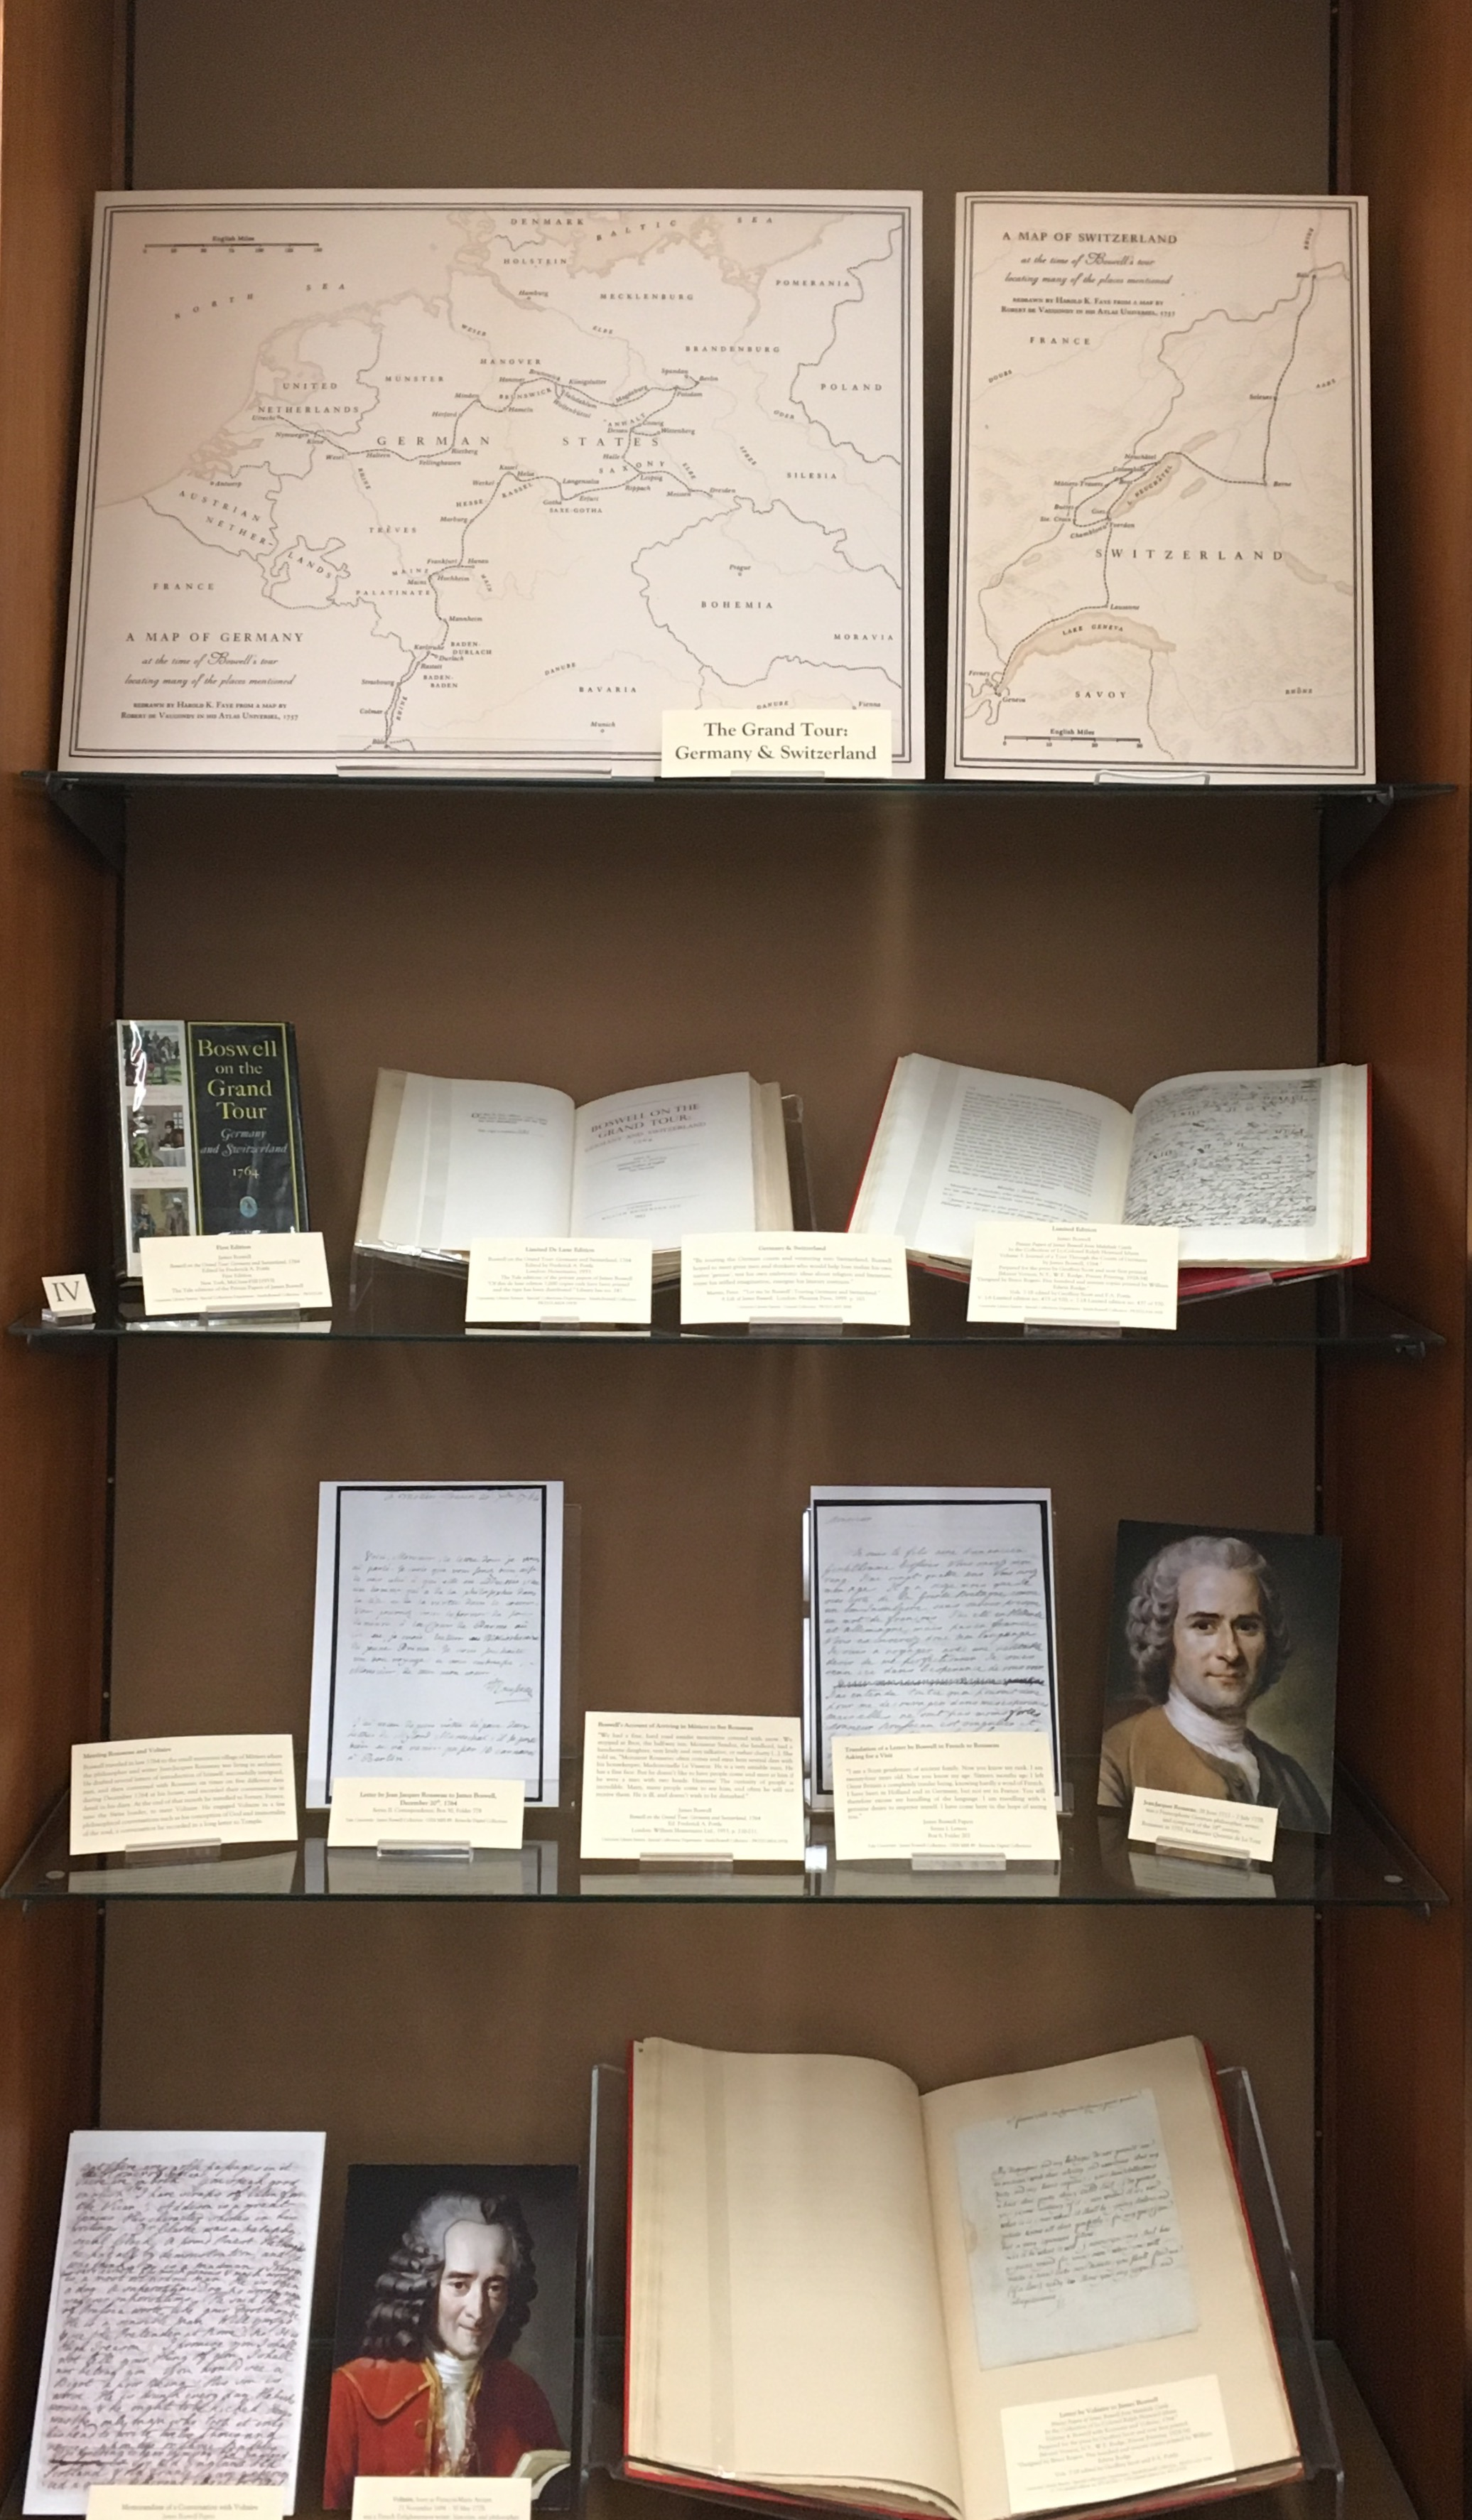 A display case featuring maps of Germany and Holland and the books, supplementary texts, and images featured on this page.